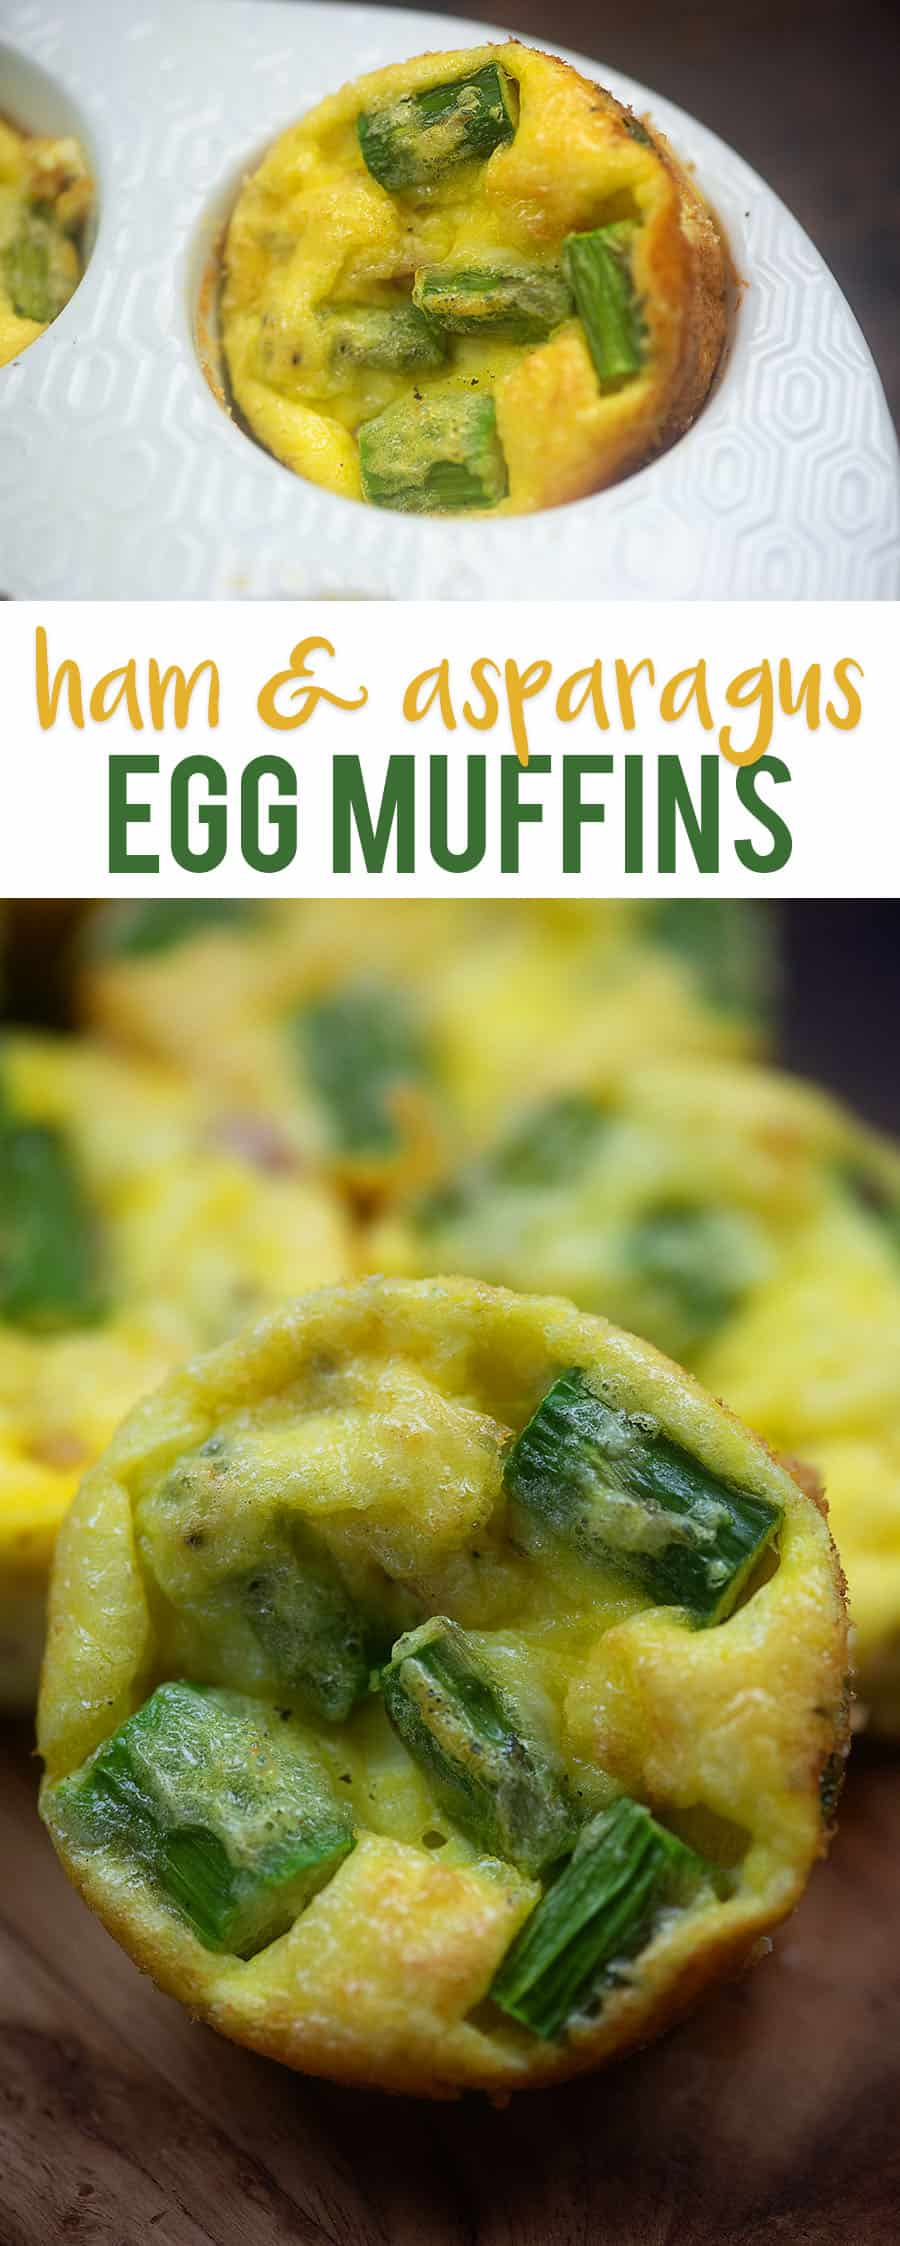 Ham and Asparagus Quiche Bites! Easy to grab and go and so full of flavor! 2 carbs per muffin. #keto #lowcarb #lowcarbbreakfast